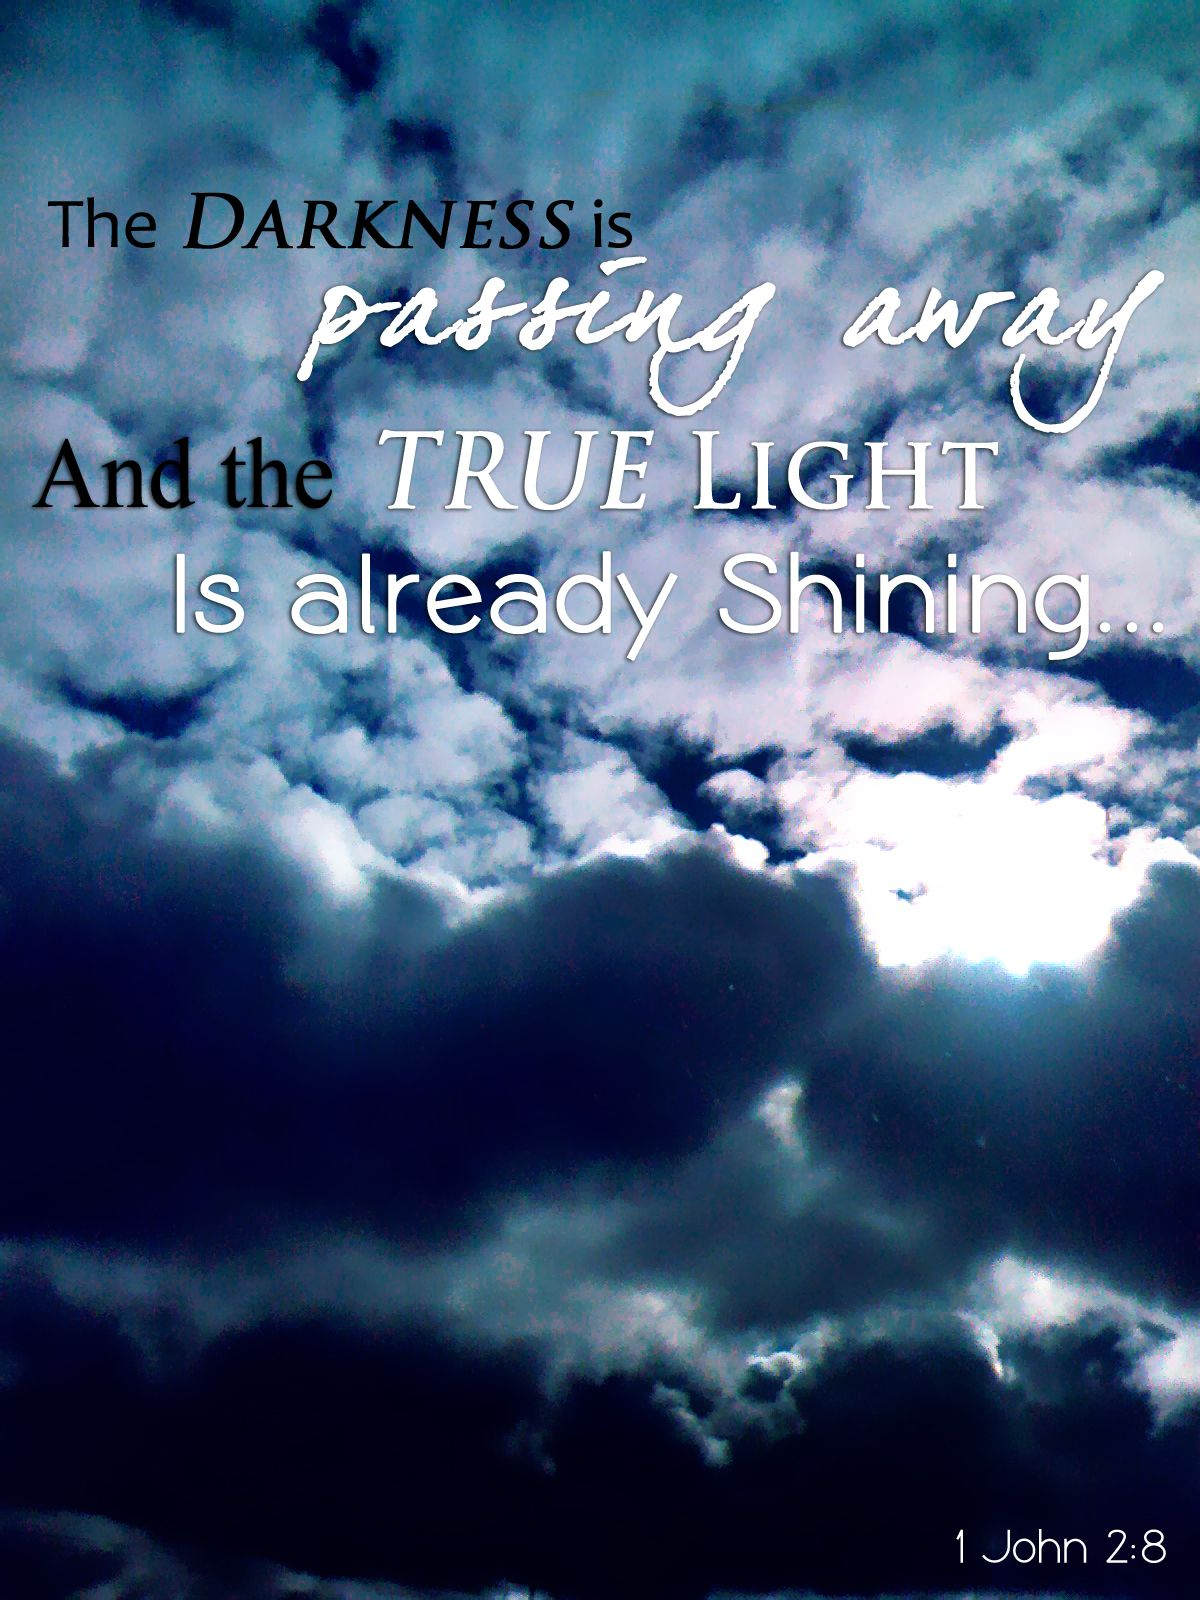 The True Light Quotes Pinterest Sayings And Quotes